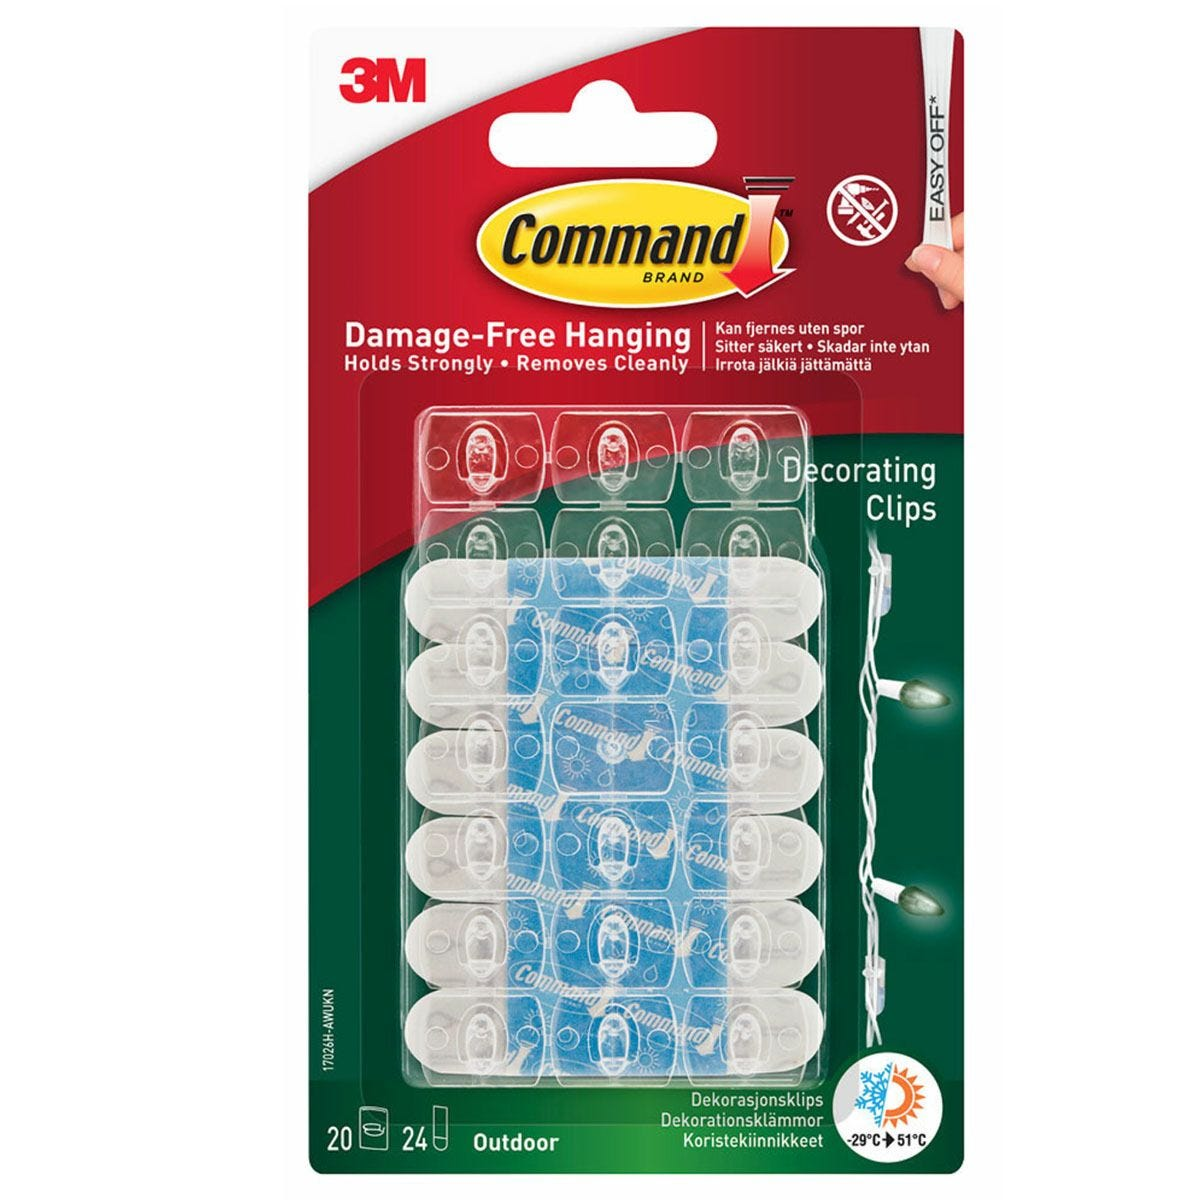 3M Command Outdoor Decorating Clip